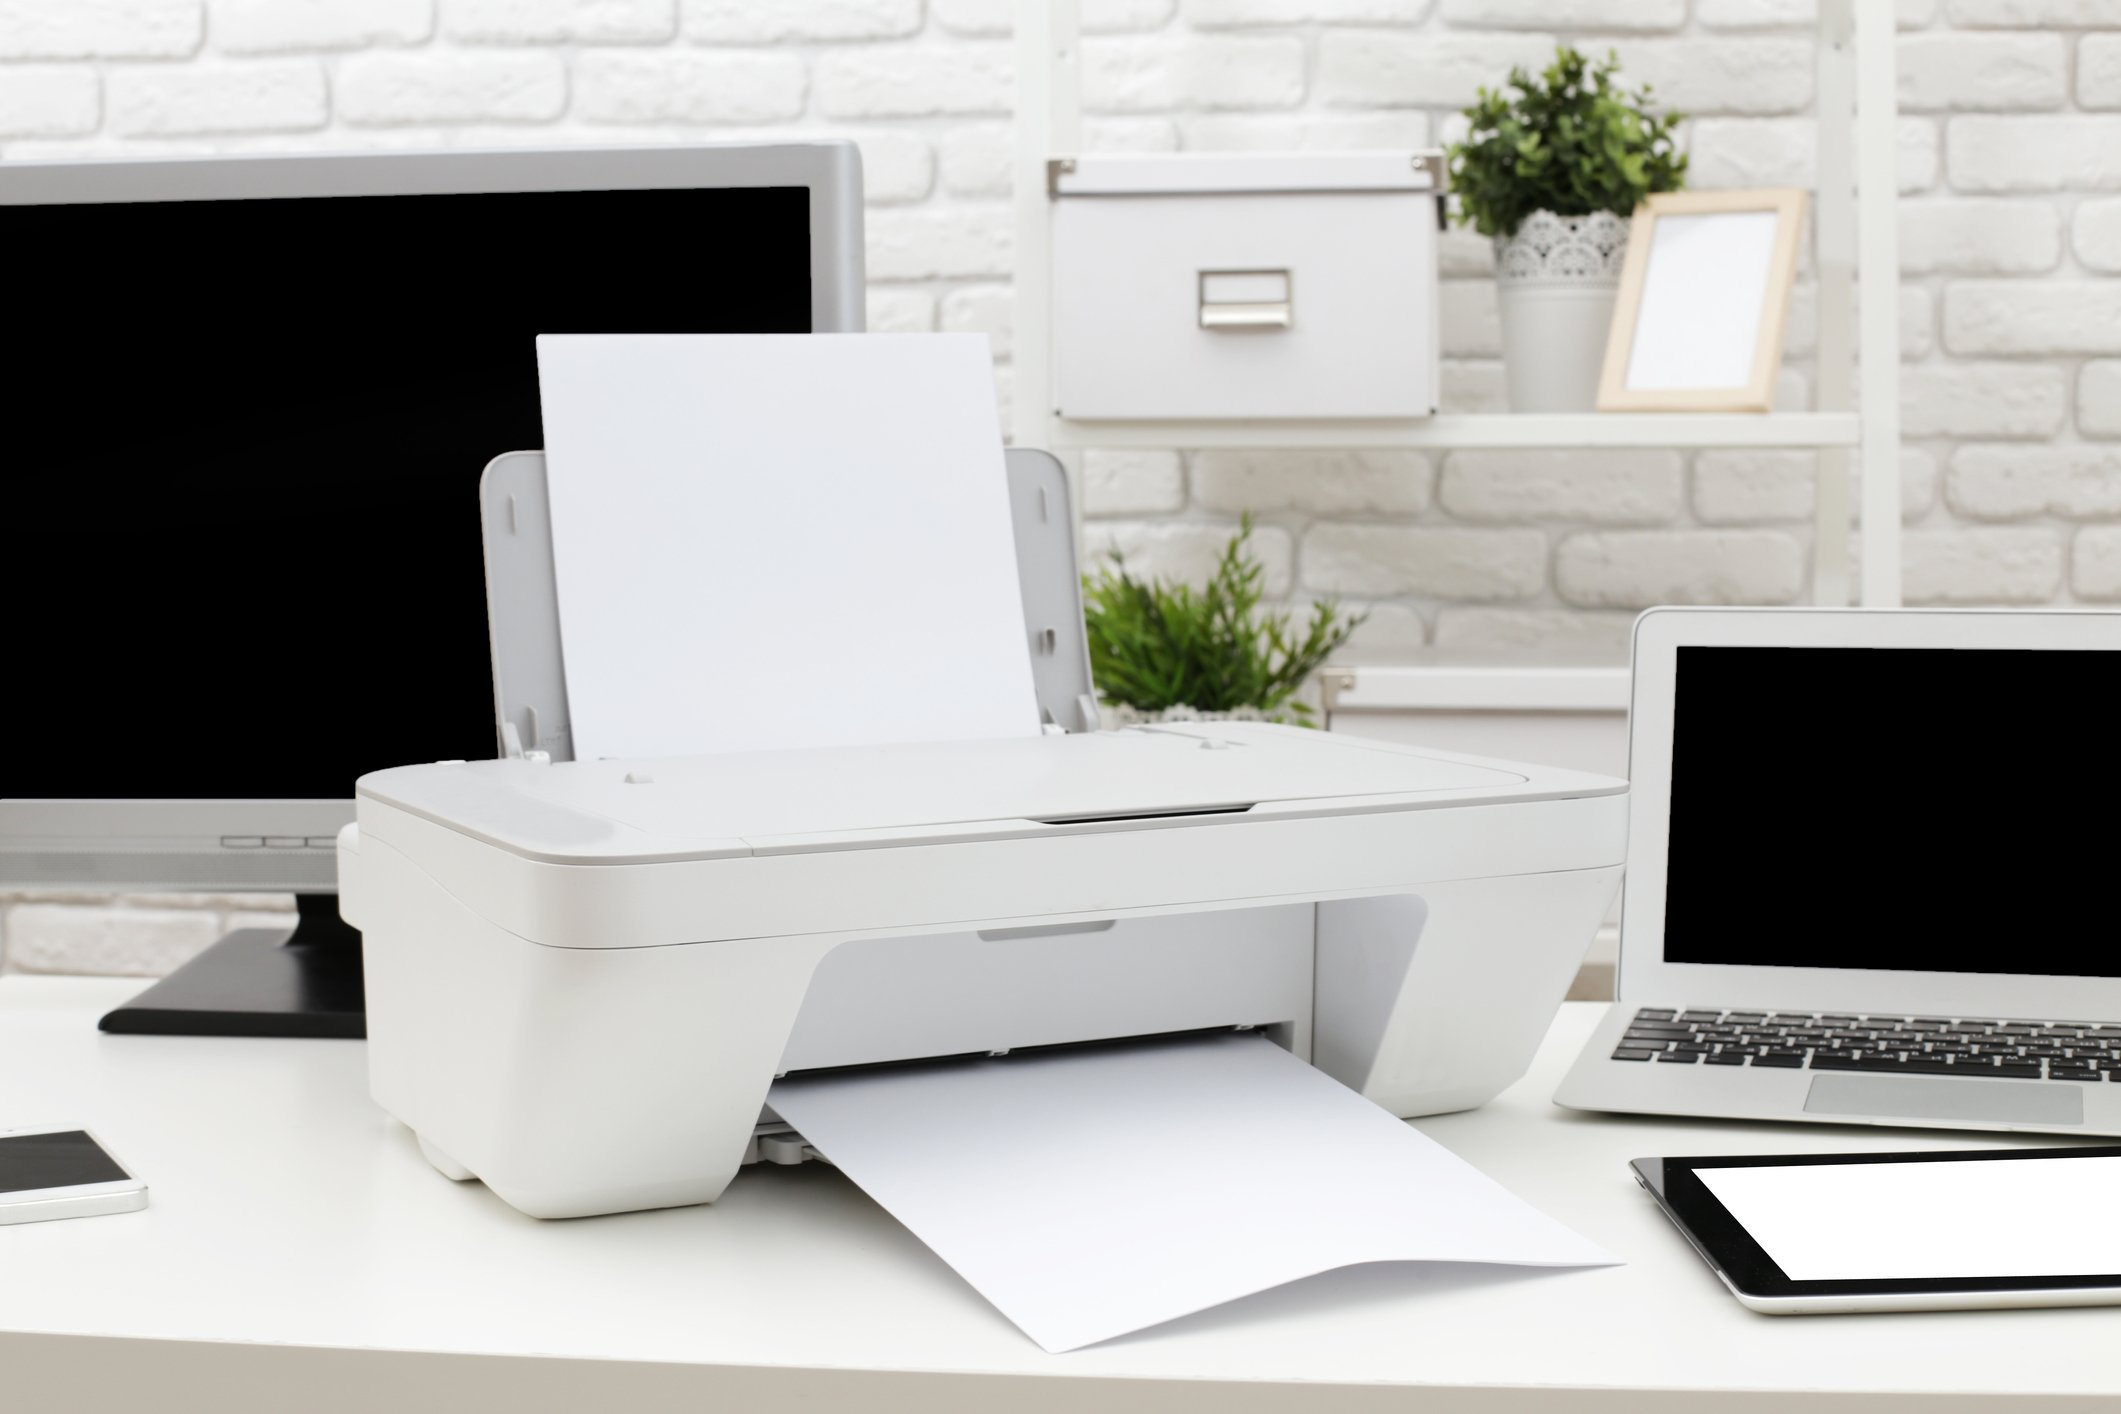 Printer and PC on a desk